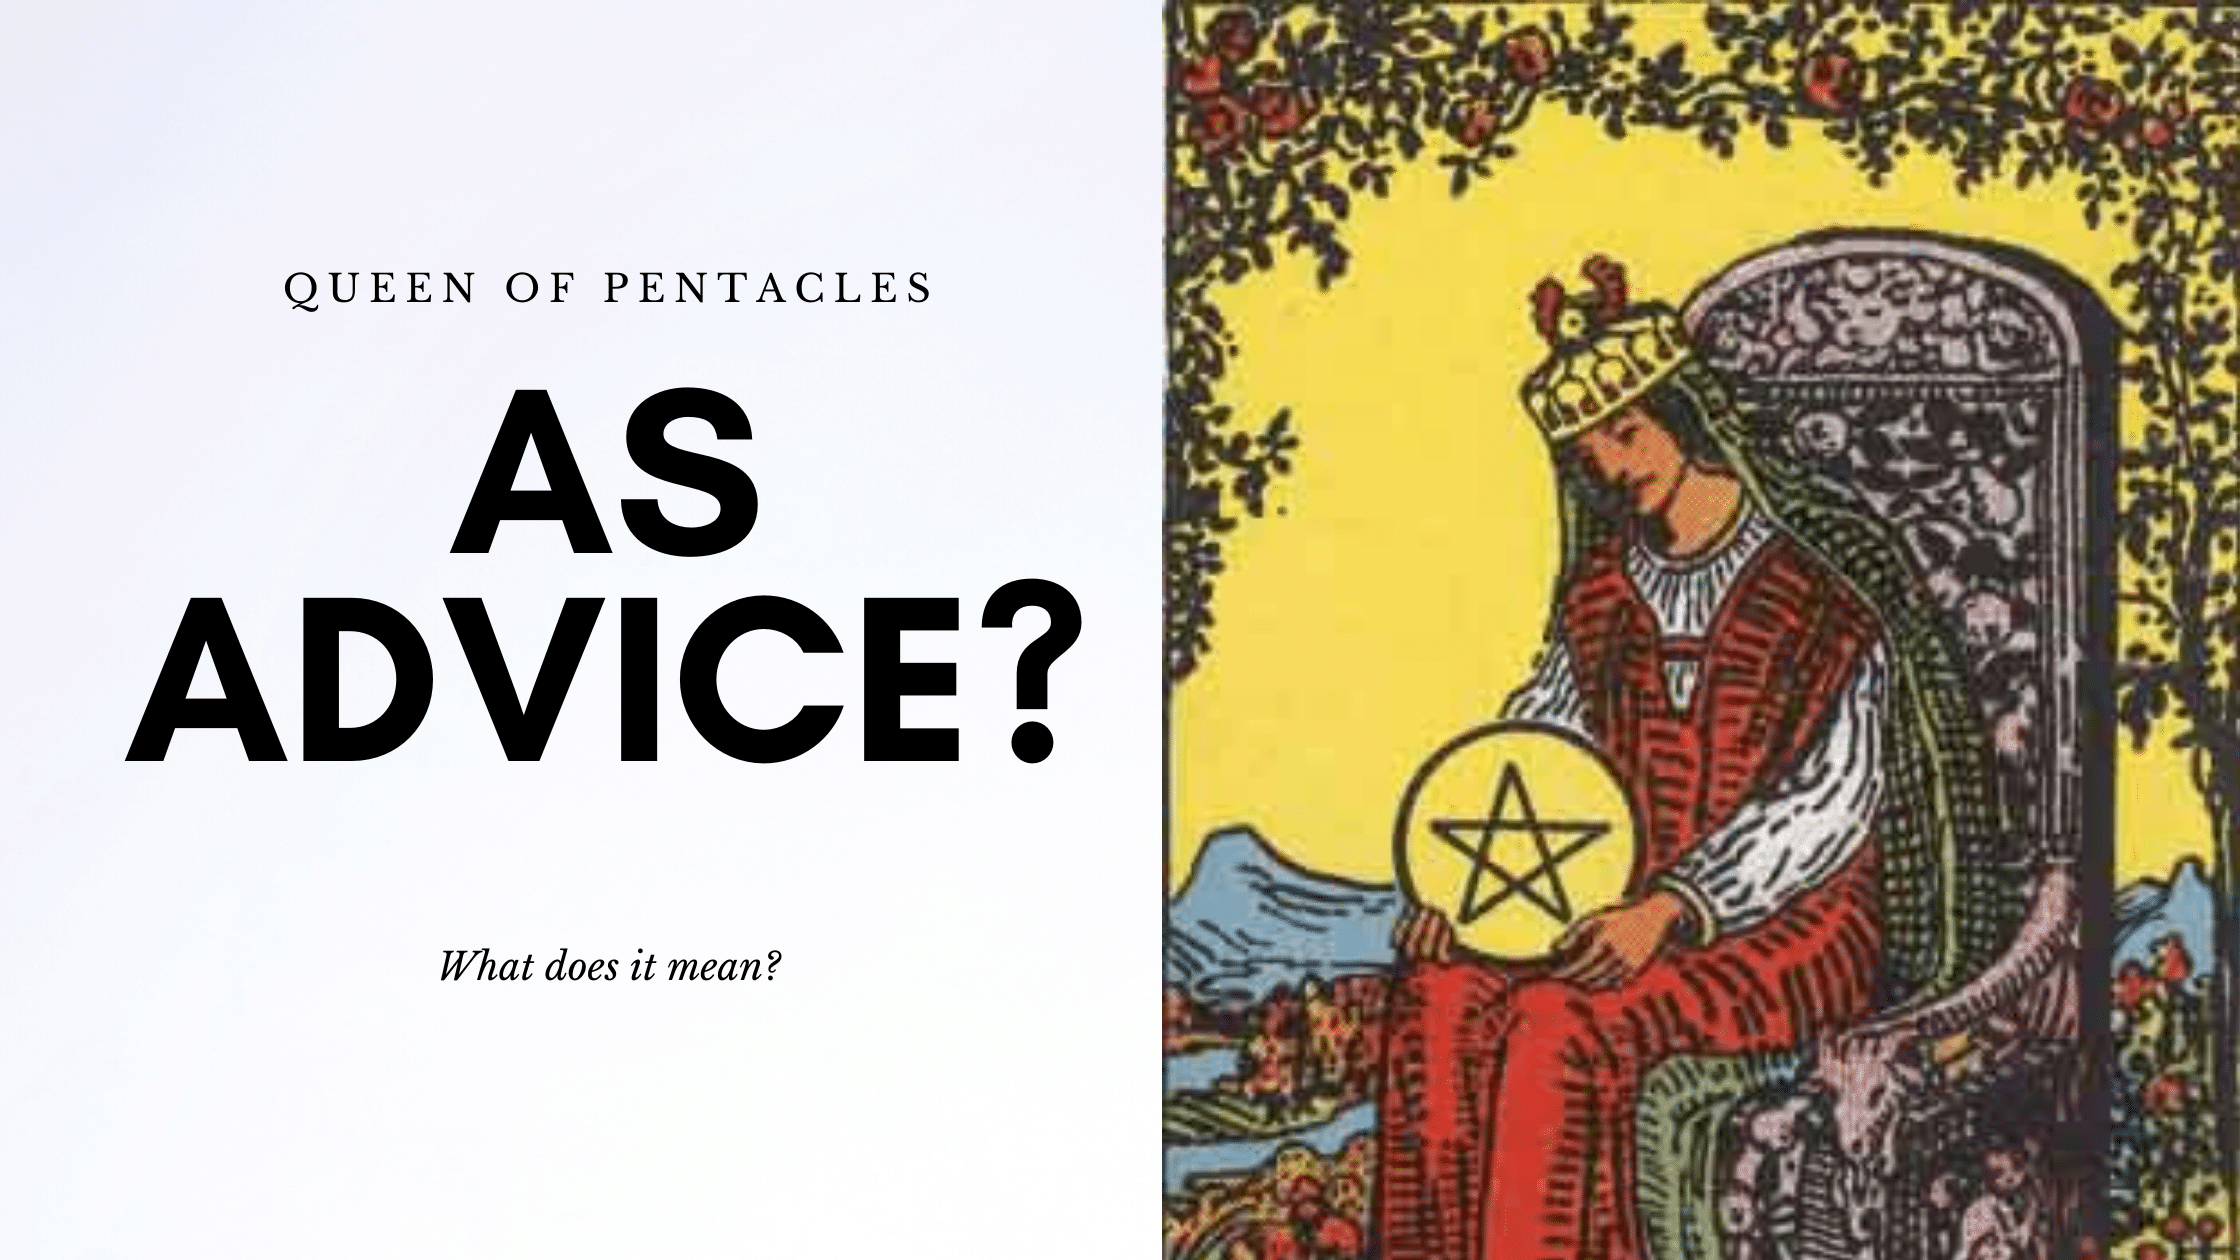 Queen of pentacles as advice